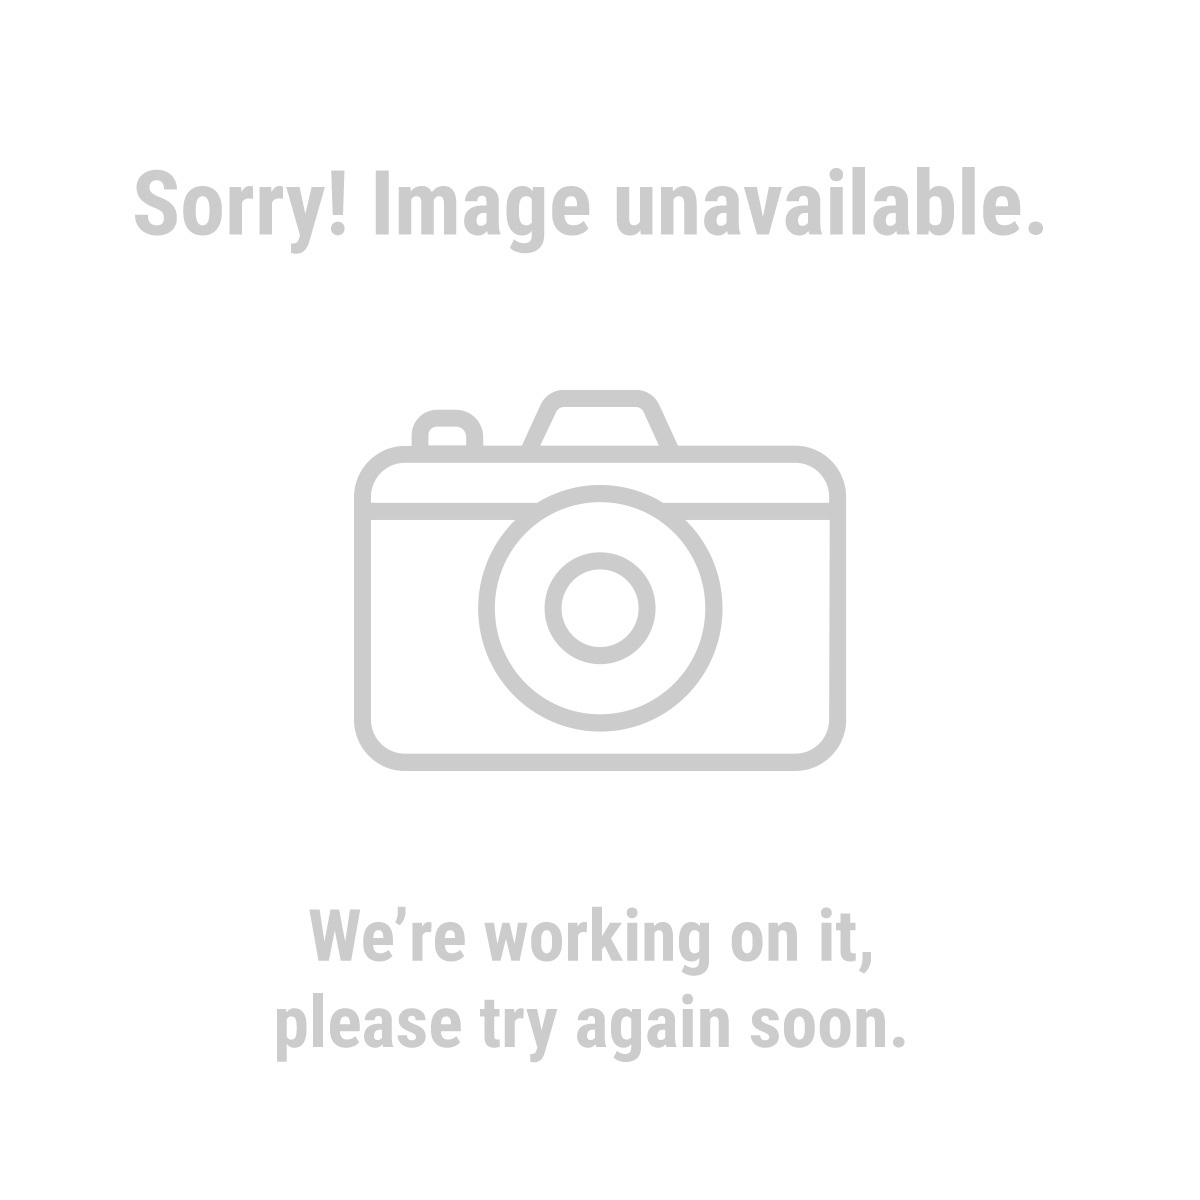 "Drill Master 69651 Cordless Drill/Driver with Keyless Chuck, 3/8"", 18 Volt"